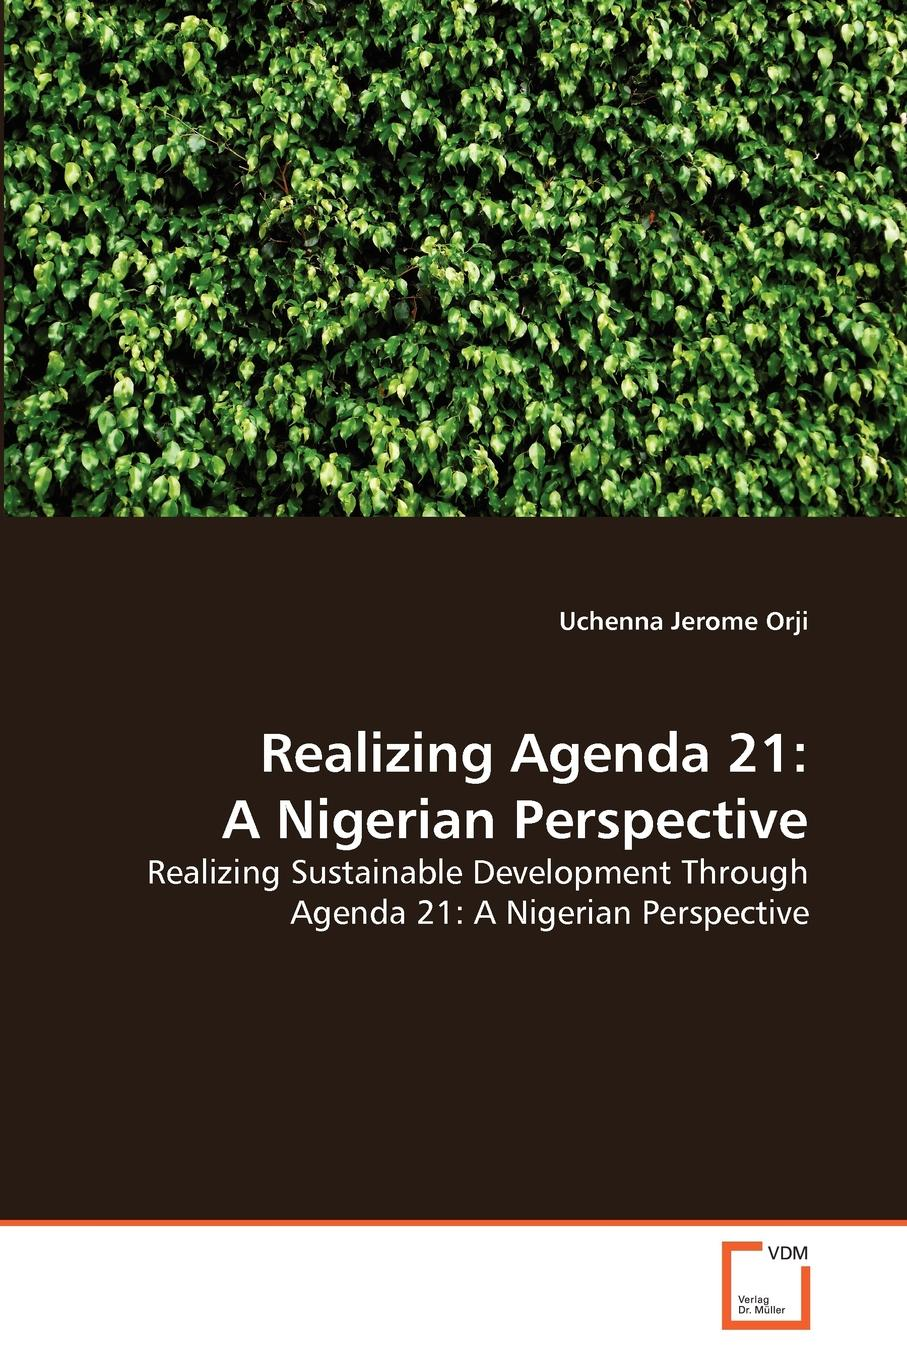 Uchenna Jerome Orji Realizing Agenda 21. A Nigerian Perspective nicolas lesca environmental scanning and sustainable development